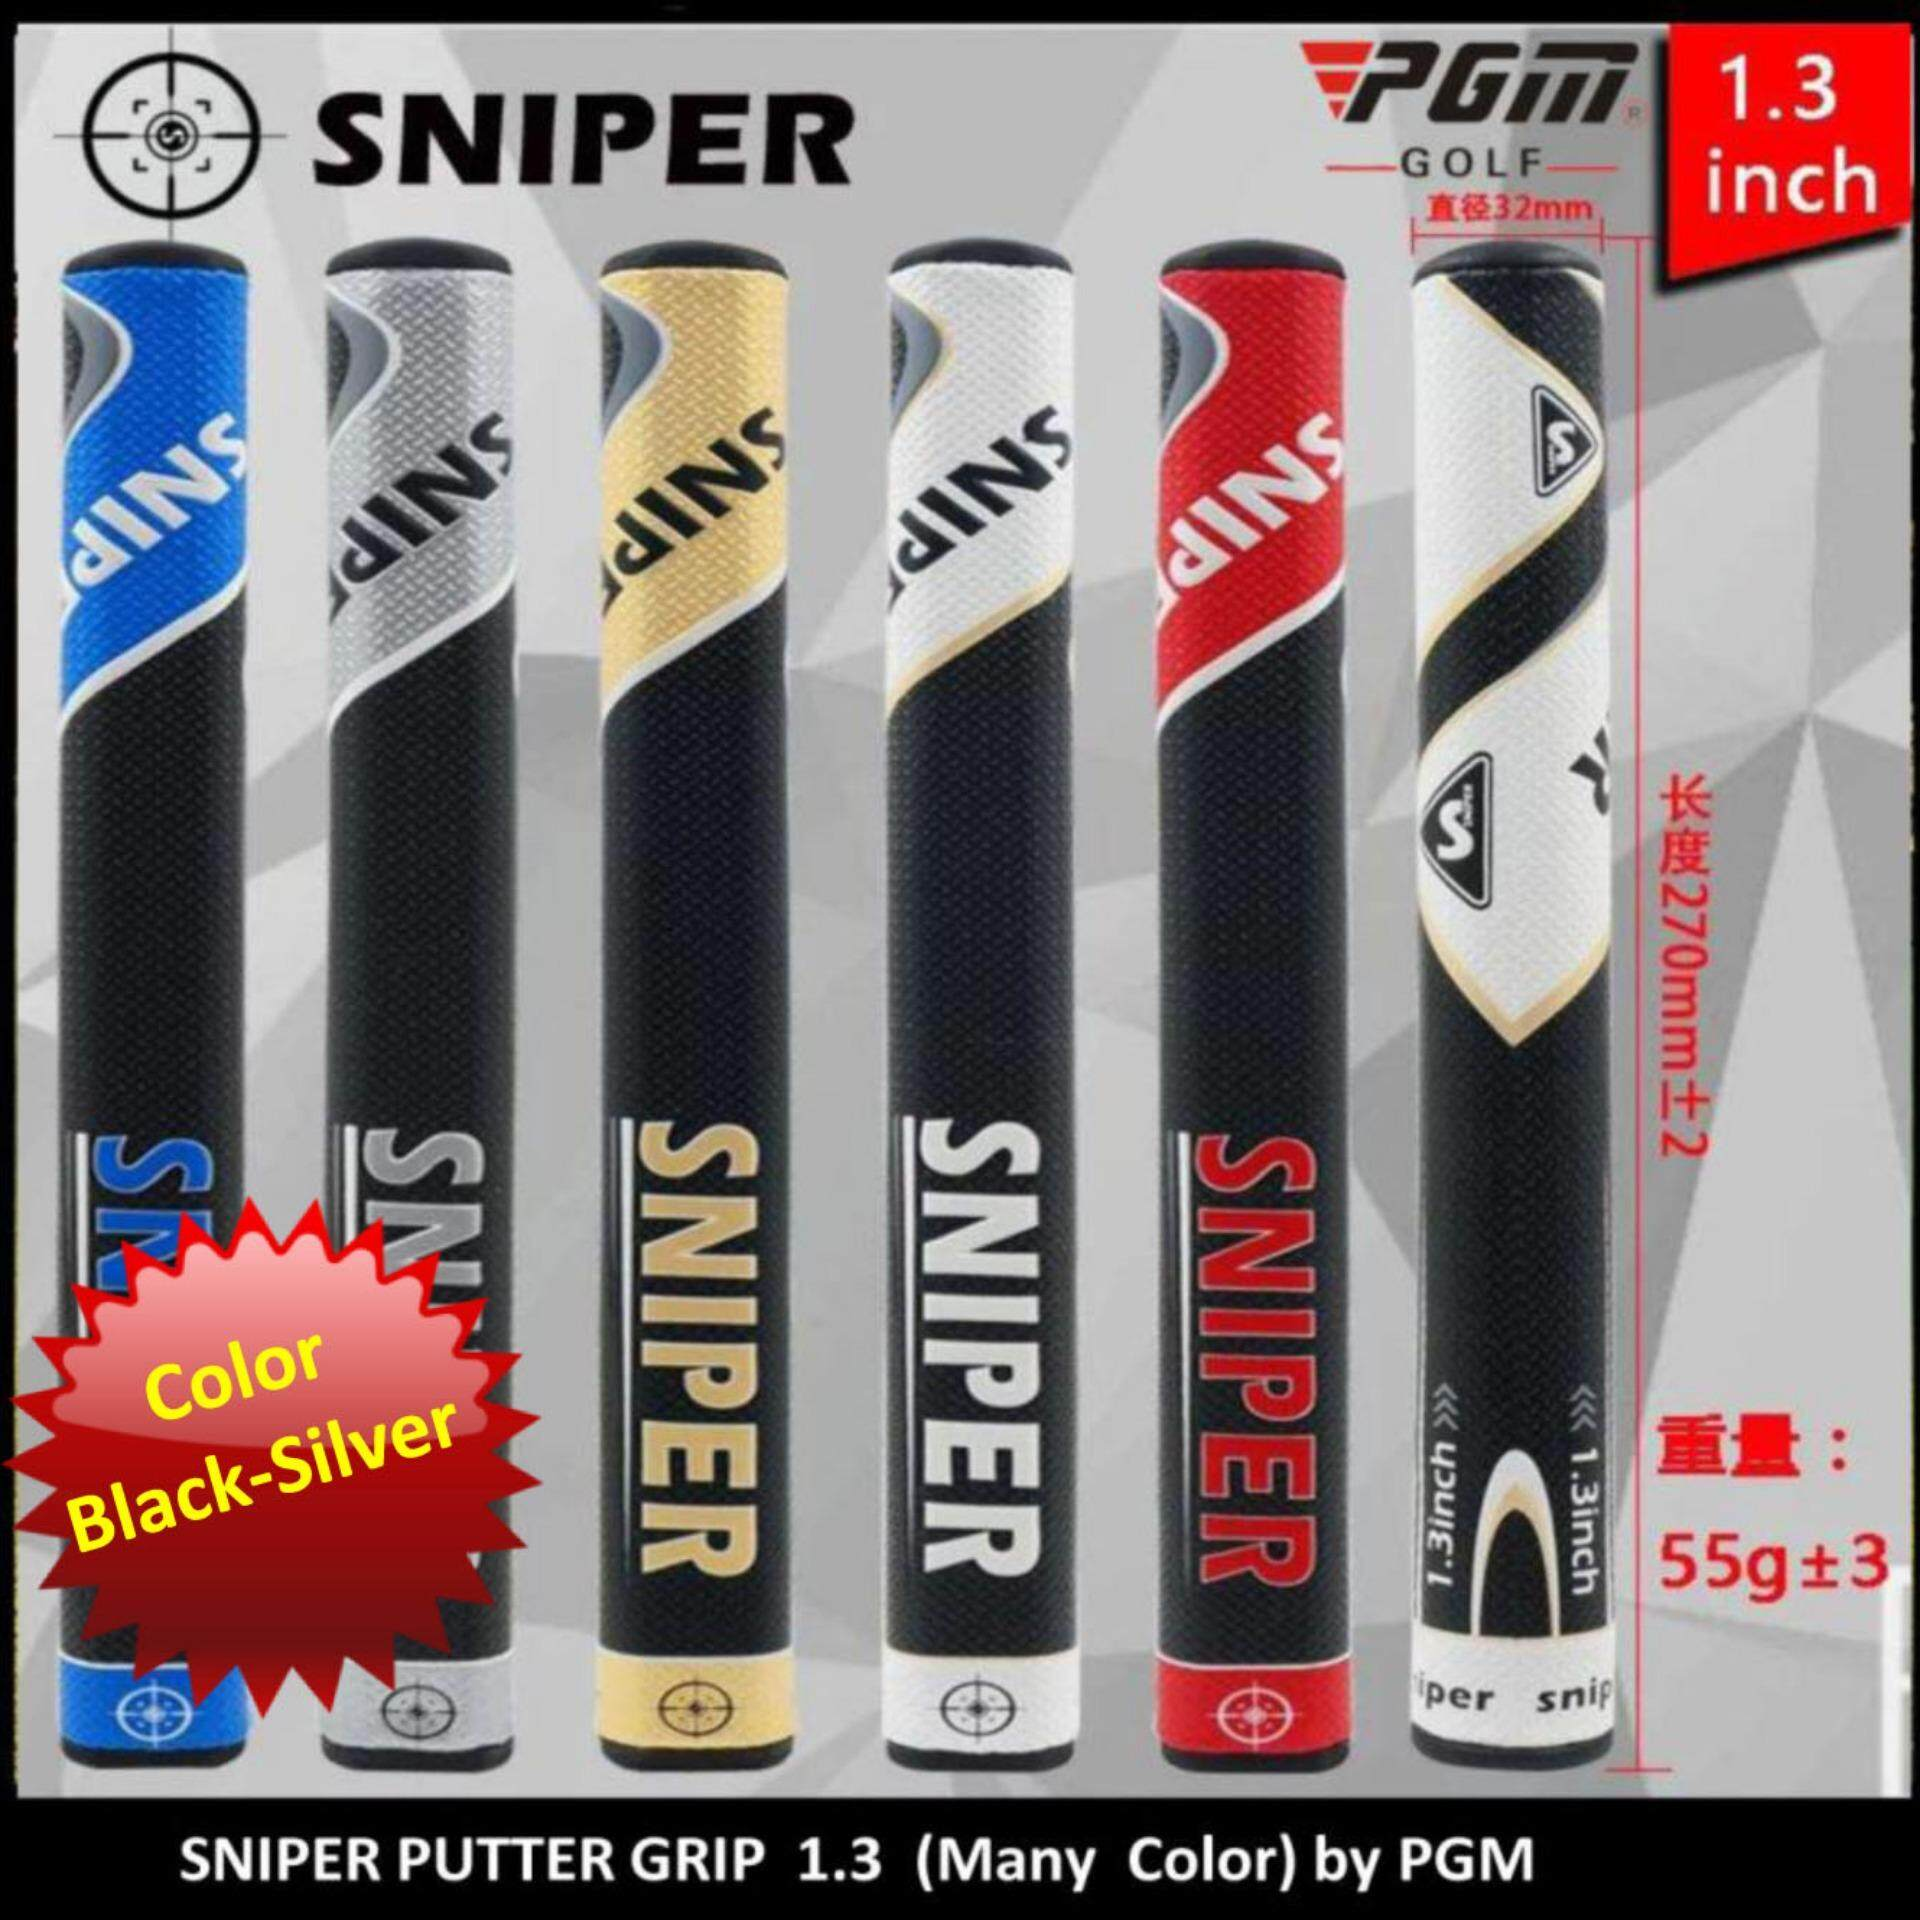 Sniper Putter Grip 1.3 (Many color available) by PGM